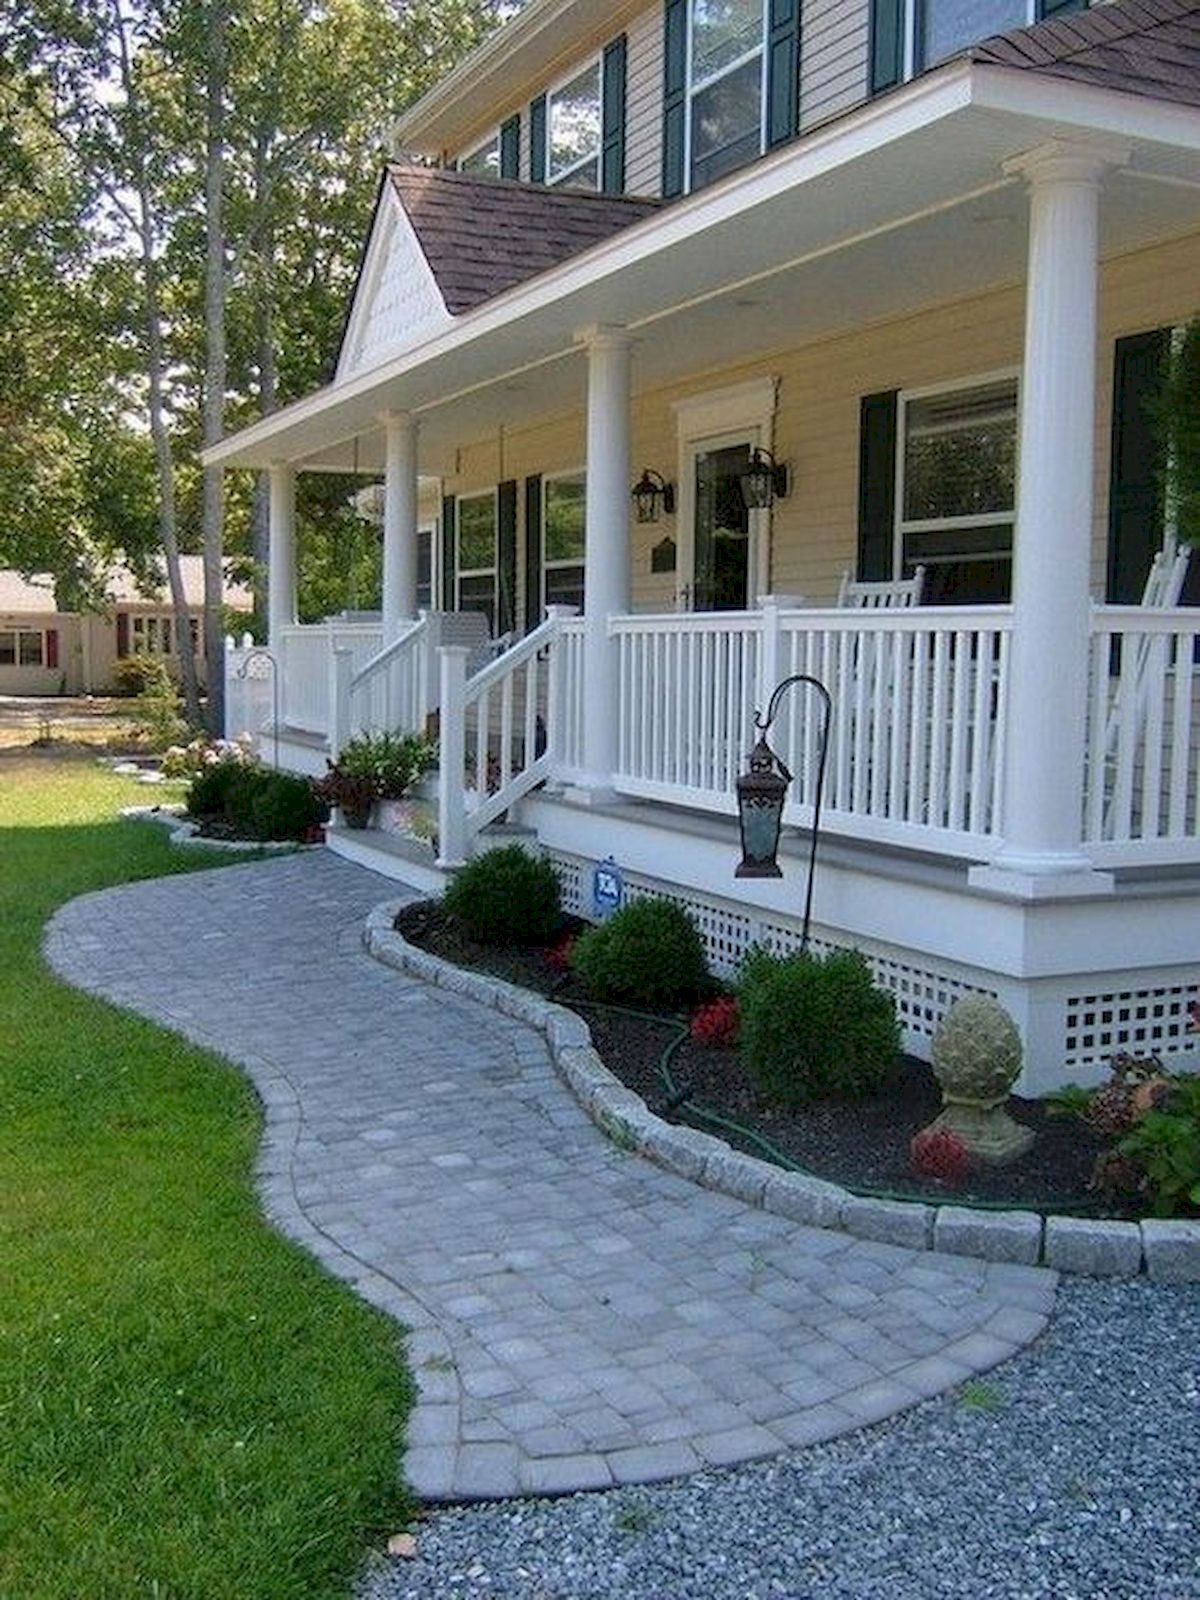 48 Stunning Front Yard Landscaping Ideas That Make Beautiful Garden (20)